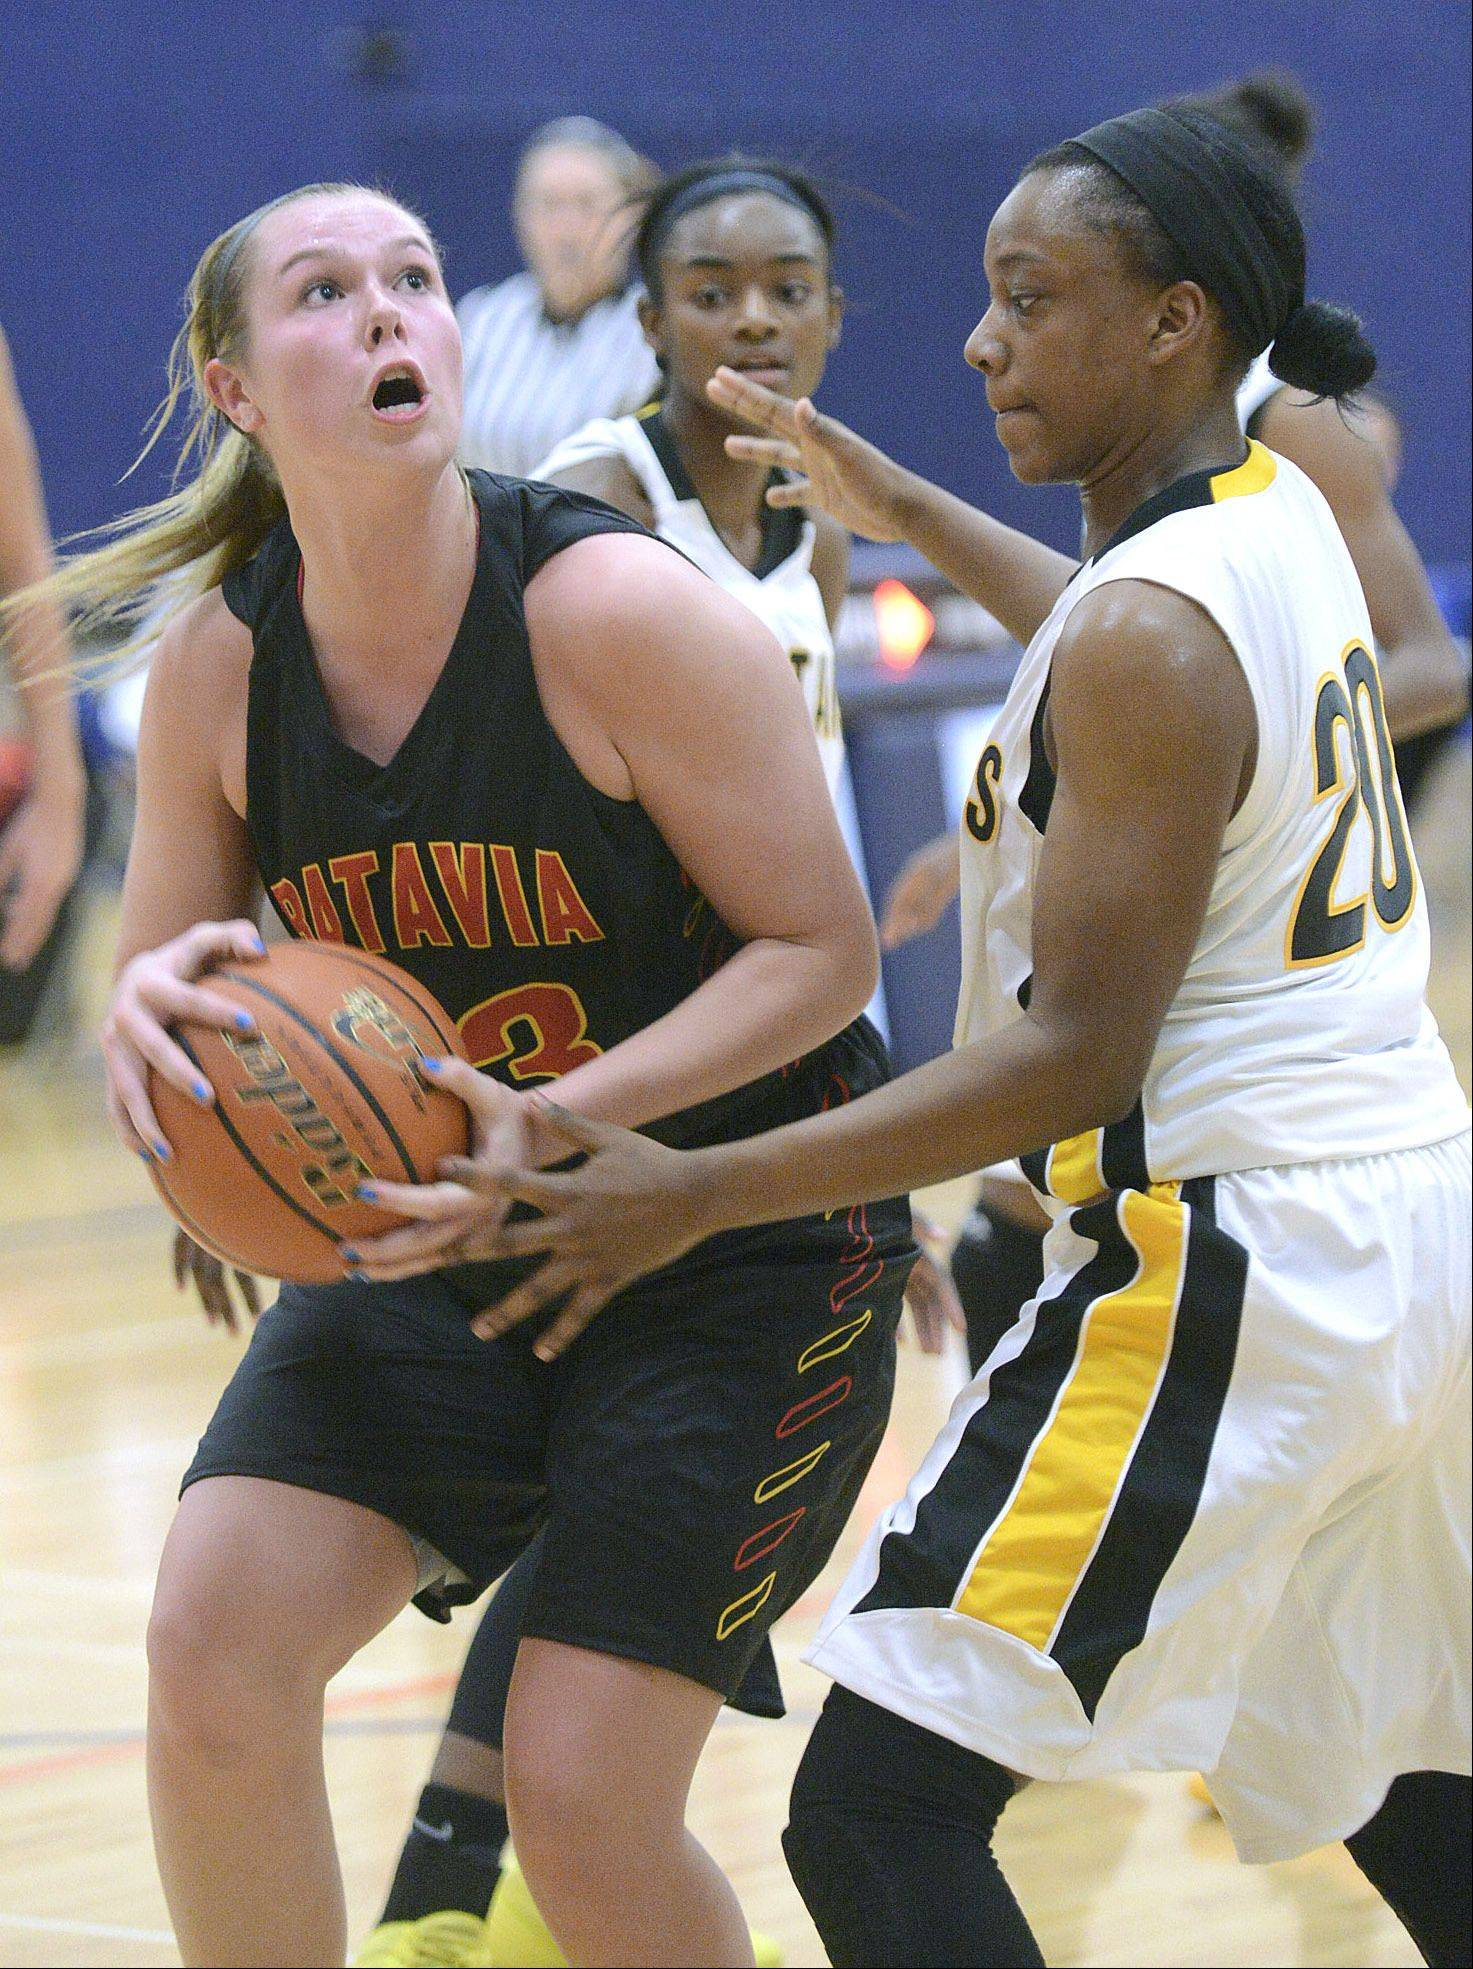 Batavia's Erin Bayram attempts a shot around Marian Catholic's Dajhae Mullins in the second quarter.